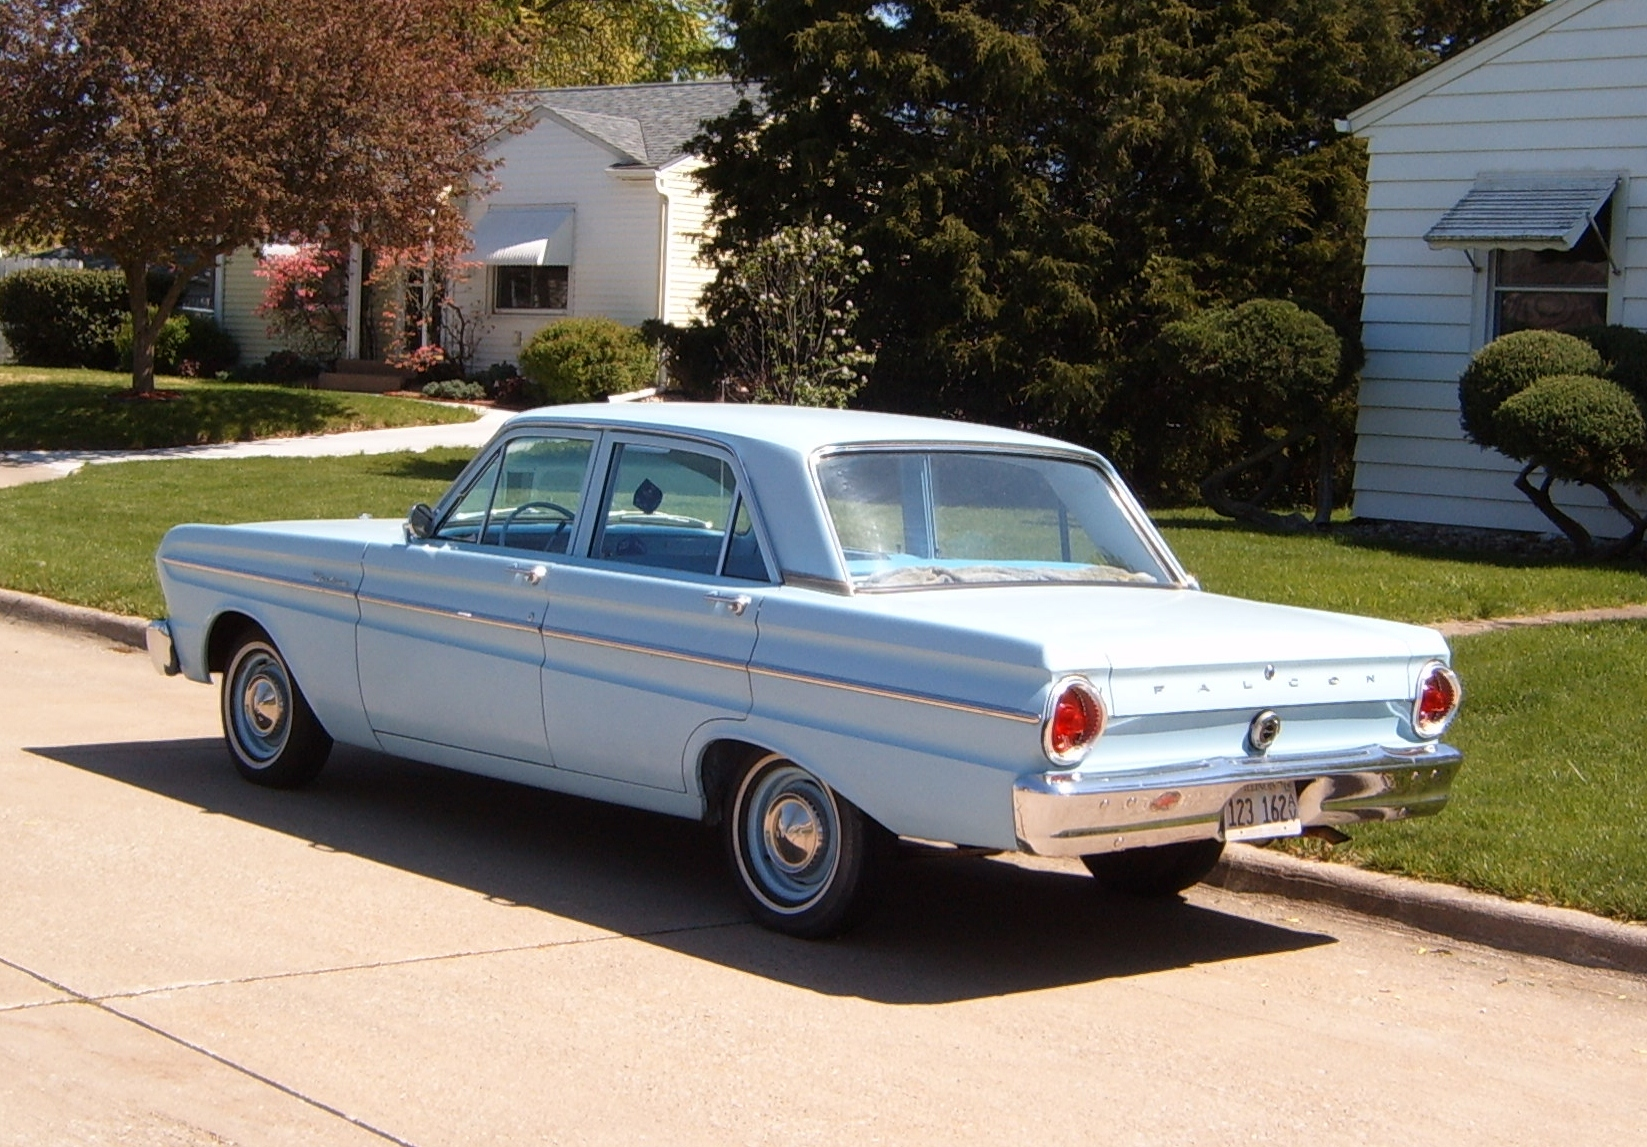 Curbside Classic 1964 Ford Falcon Plain And Simple Curbside Classic